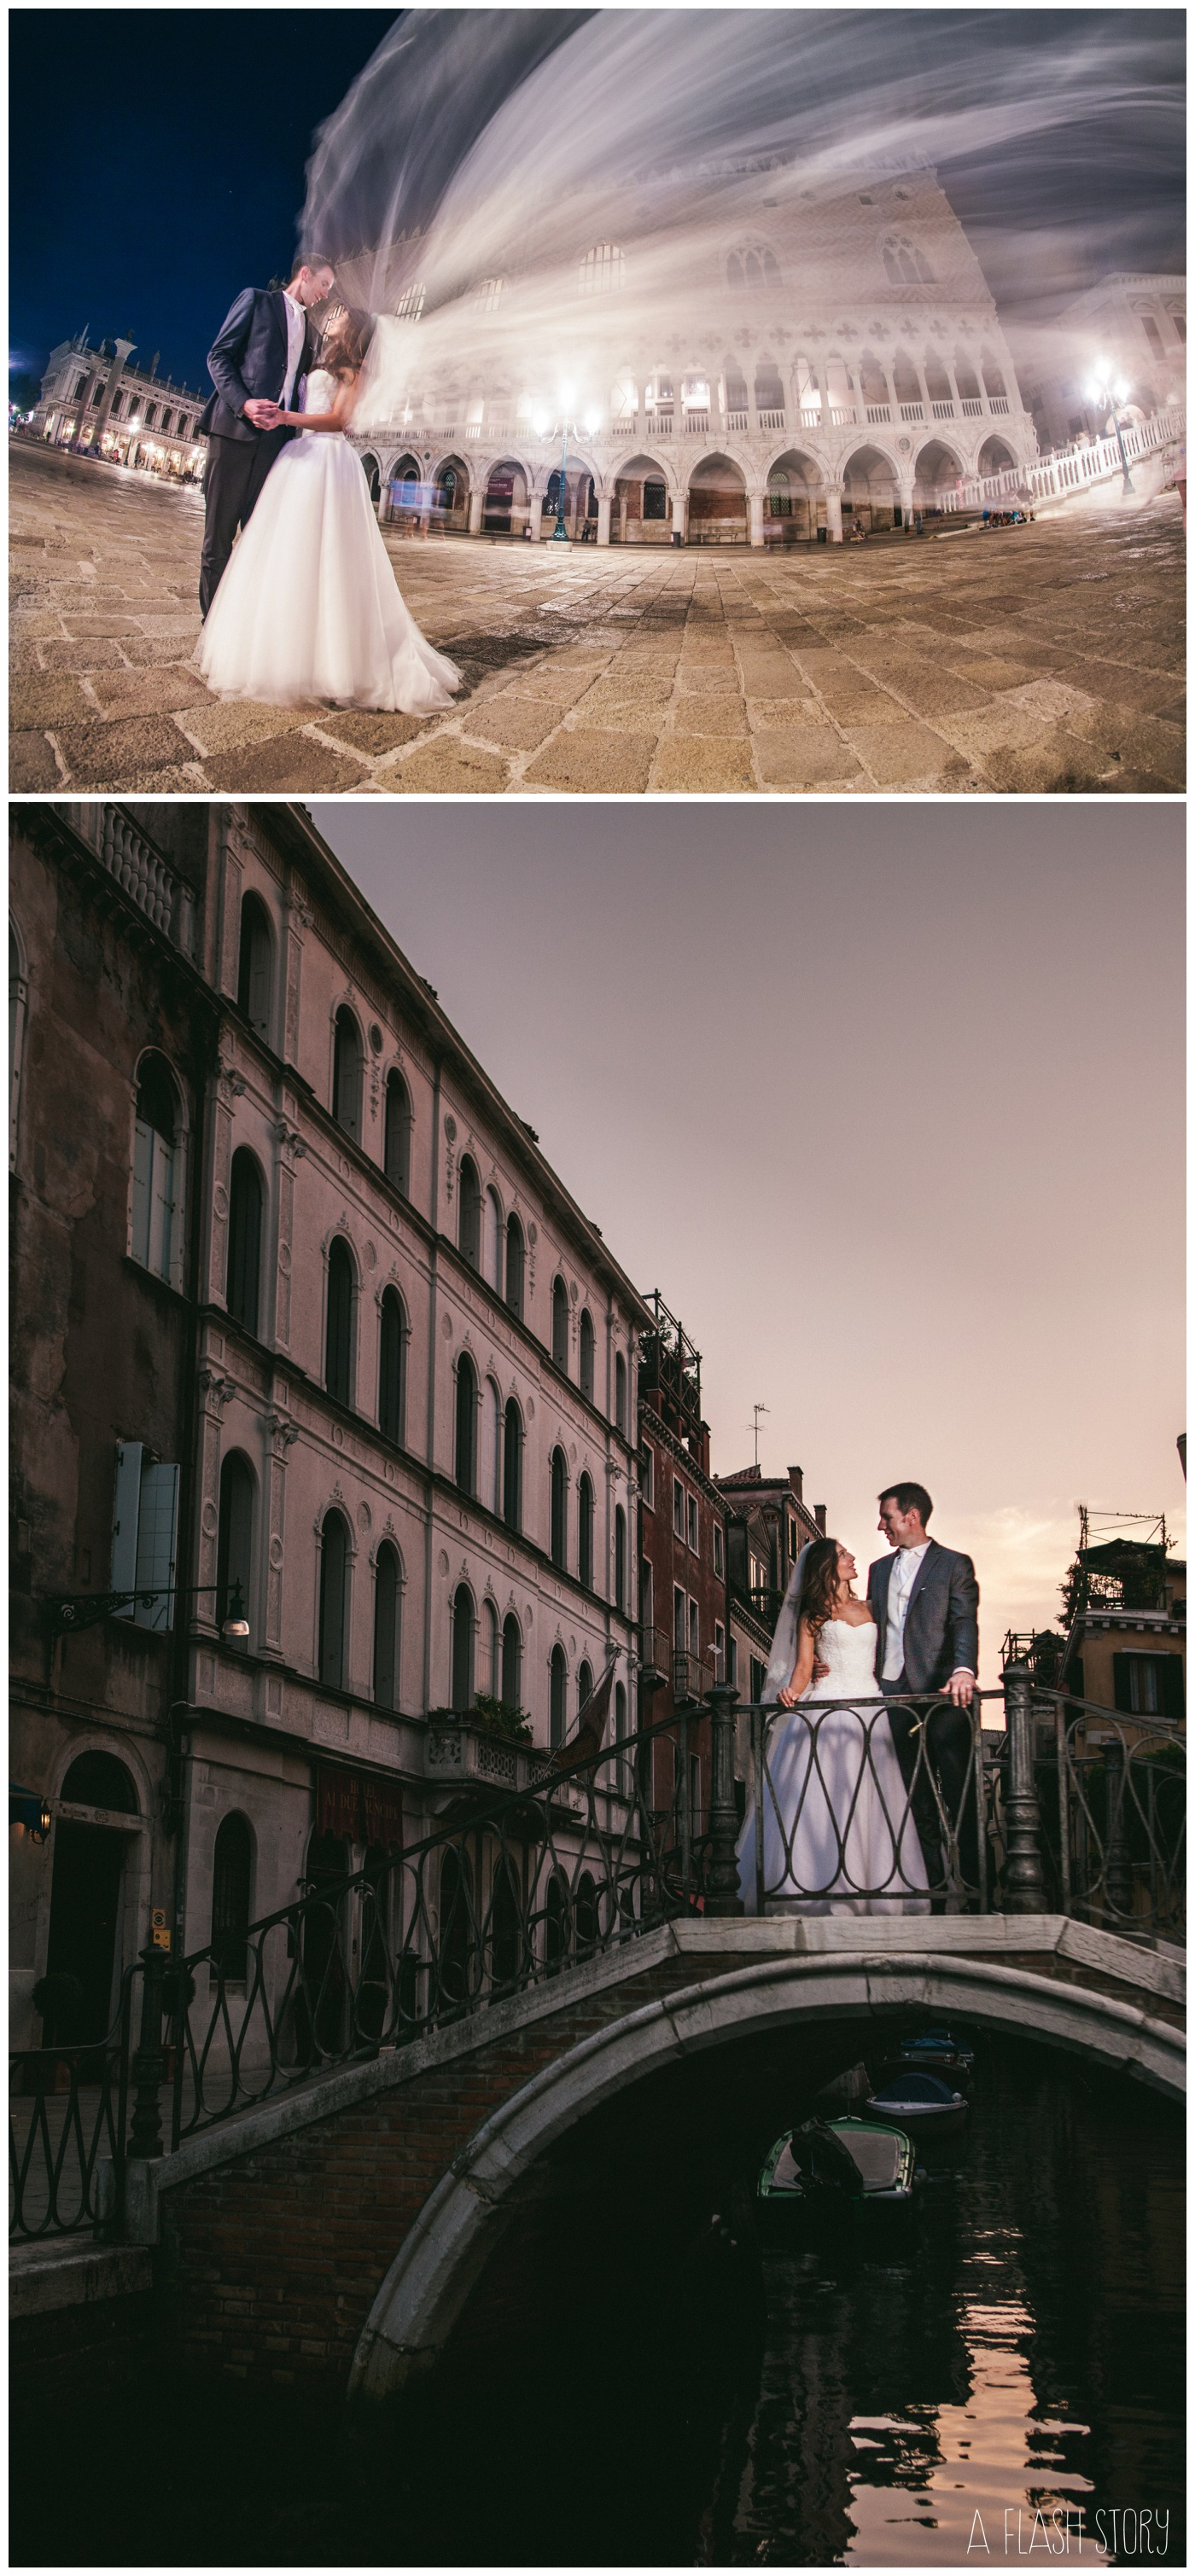 photographe-destination-venise-a-flash-story-christophe-jung-030_wb